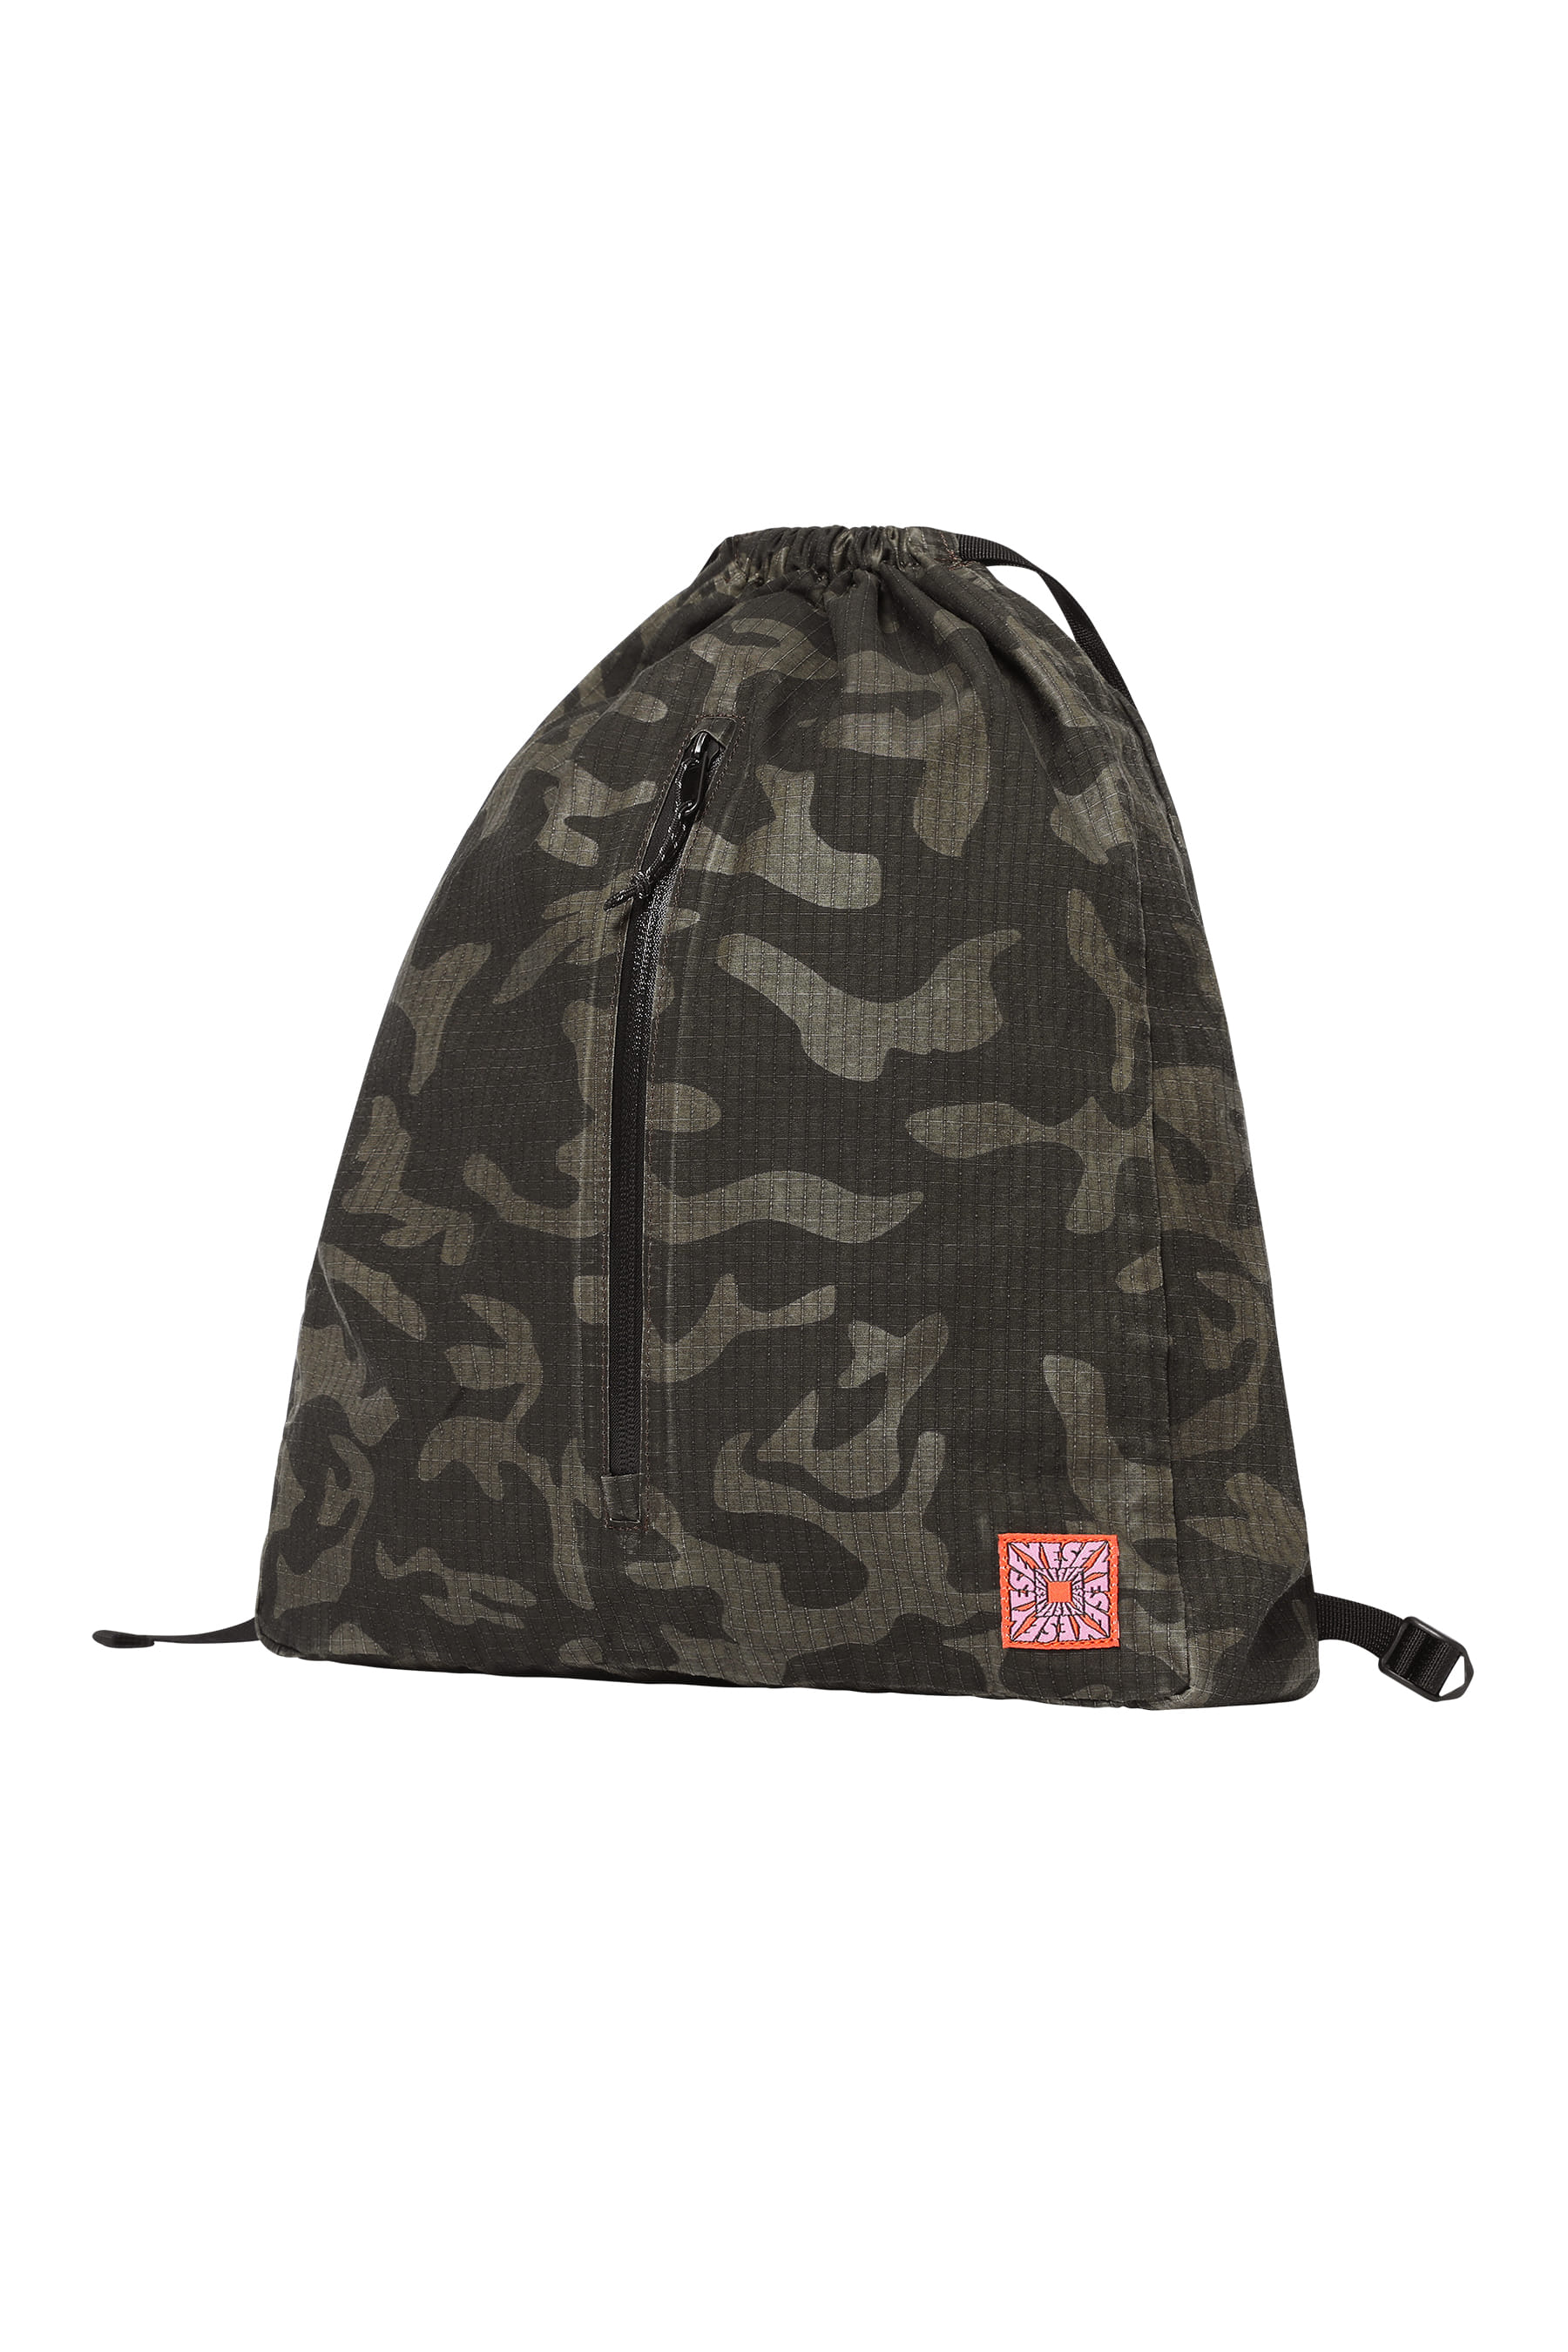 Y.E.S Gym Sack Black Camo